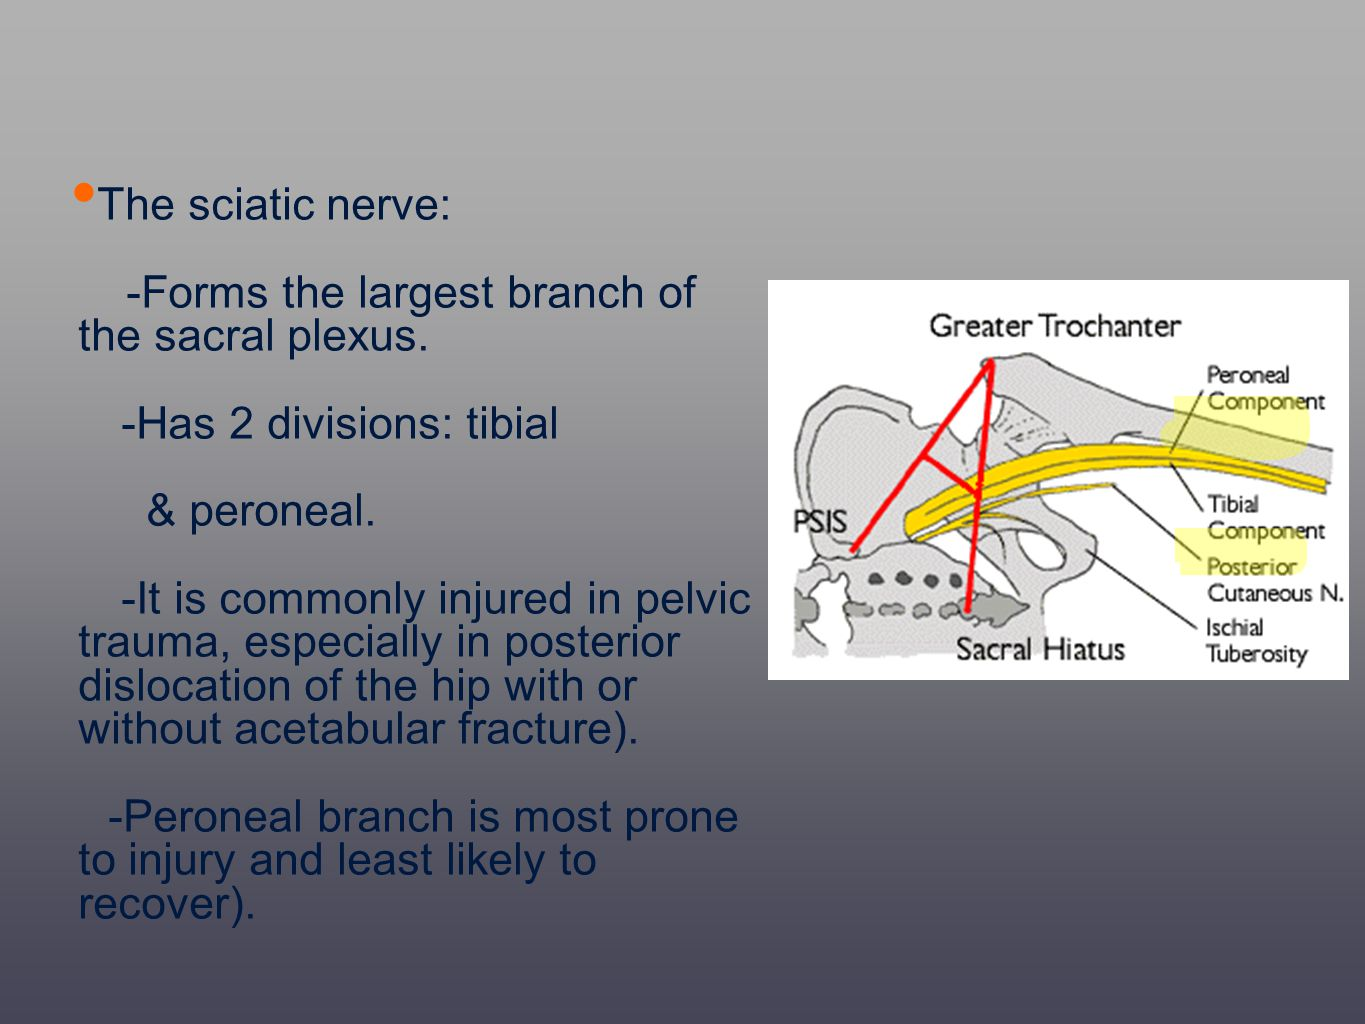 The sciatic nerve: -Forms the largest branch of the sacral plexus. -Has 2 divisions: tibial & peroneal. -It is commonly injured in pelvic trauma, espe